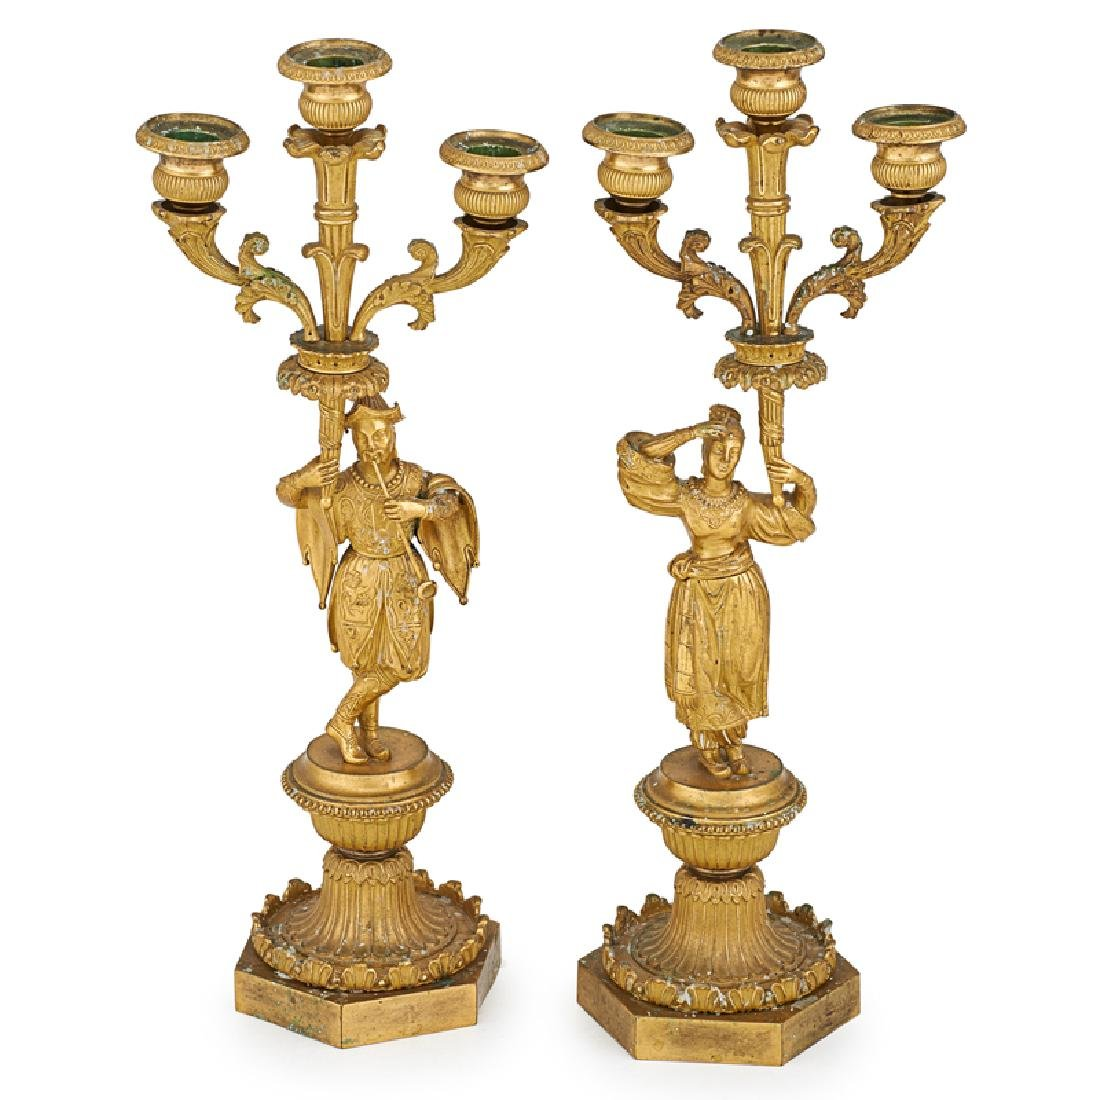 PAIR OF GILT BRONZE LOUIS PHILIPPE CANDELABRA